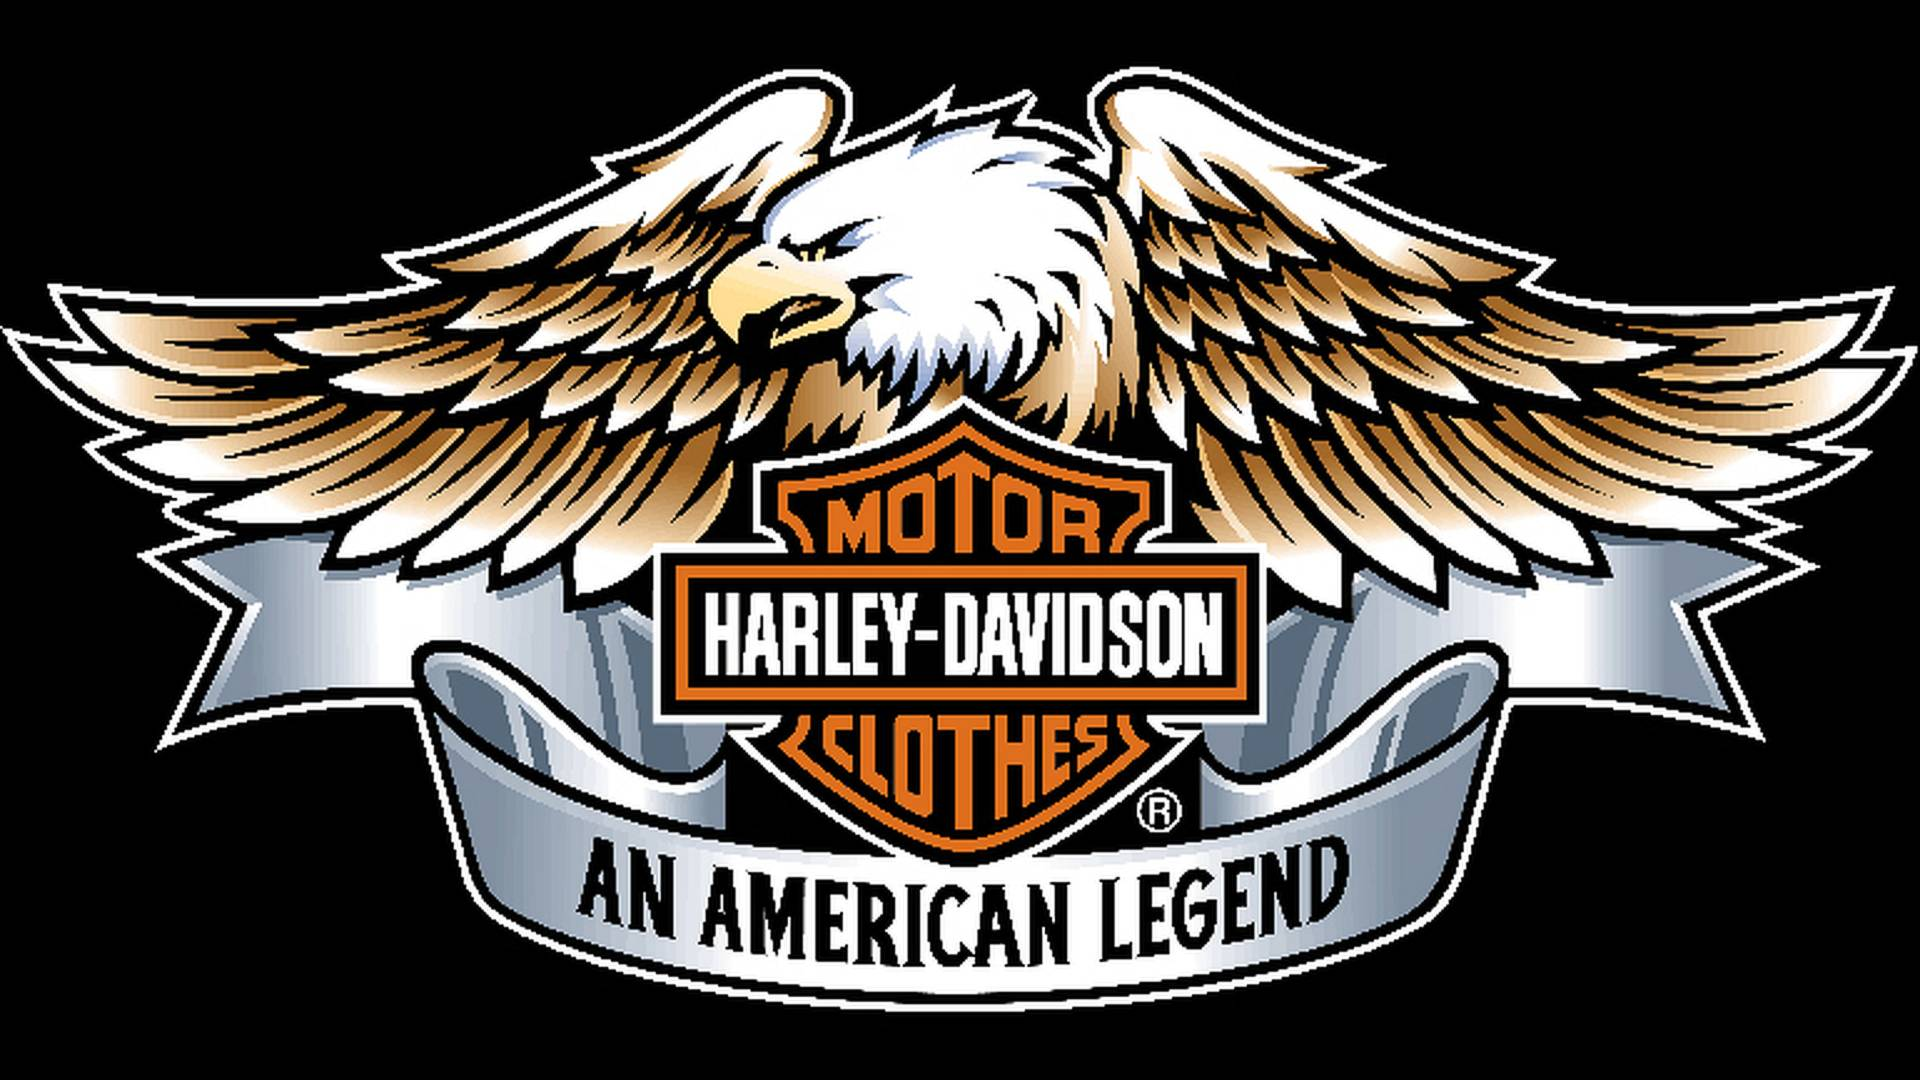 Hard Times Kick Harley Davidson In The Butt Yet Again